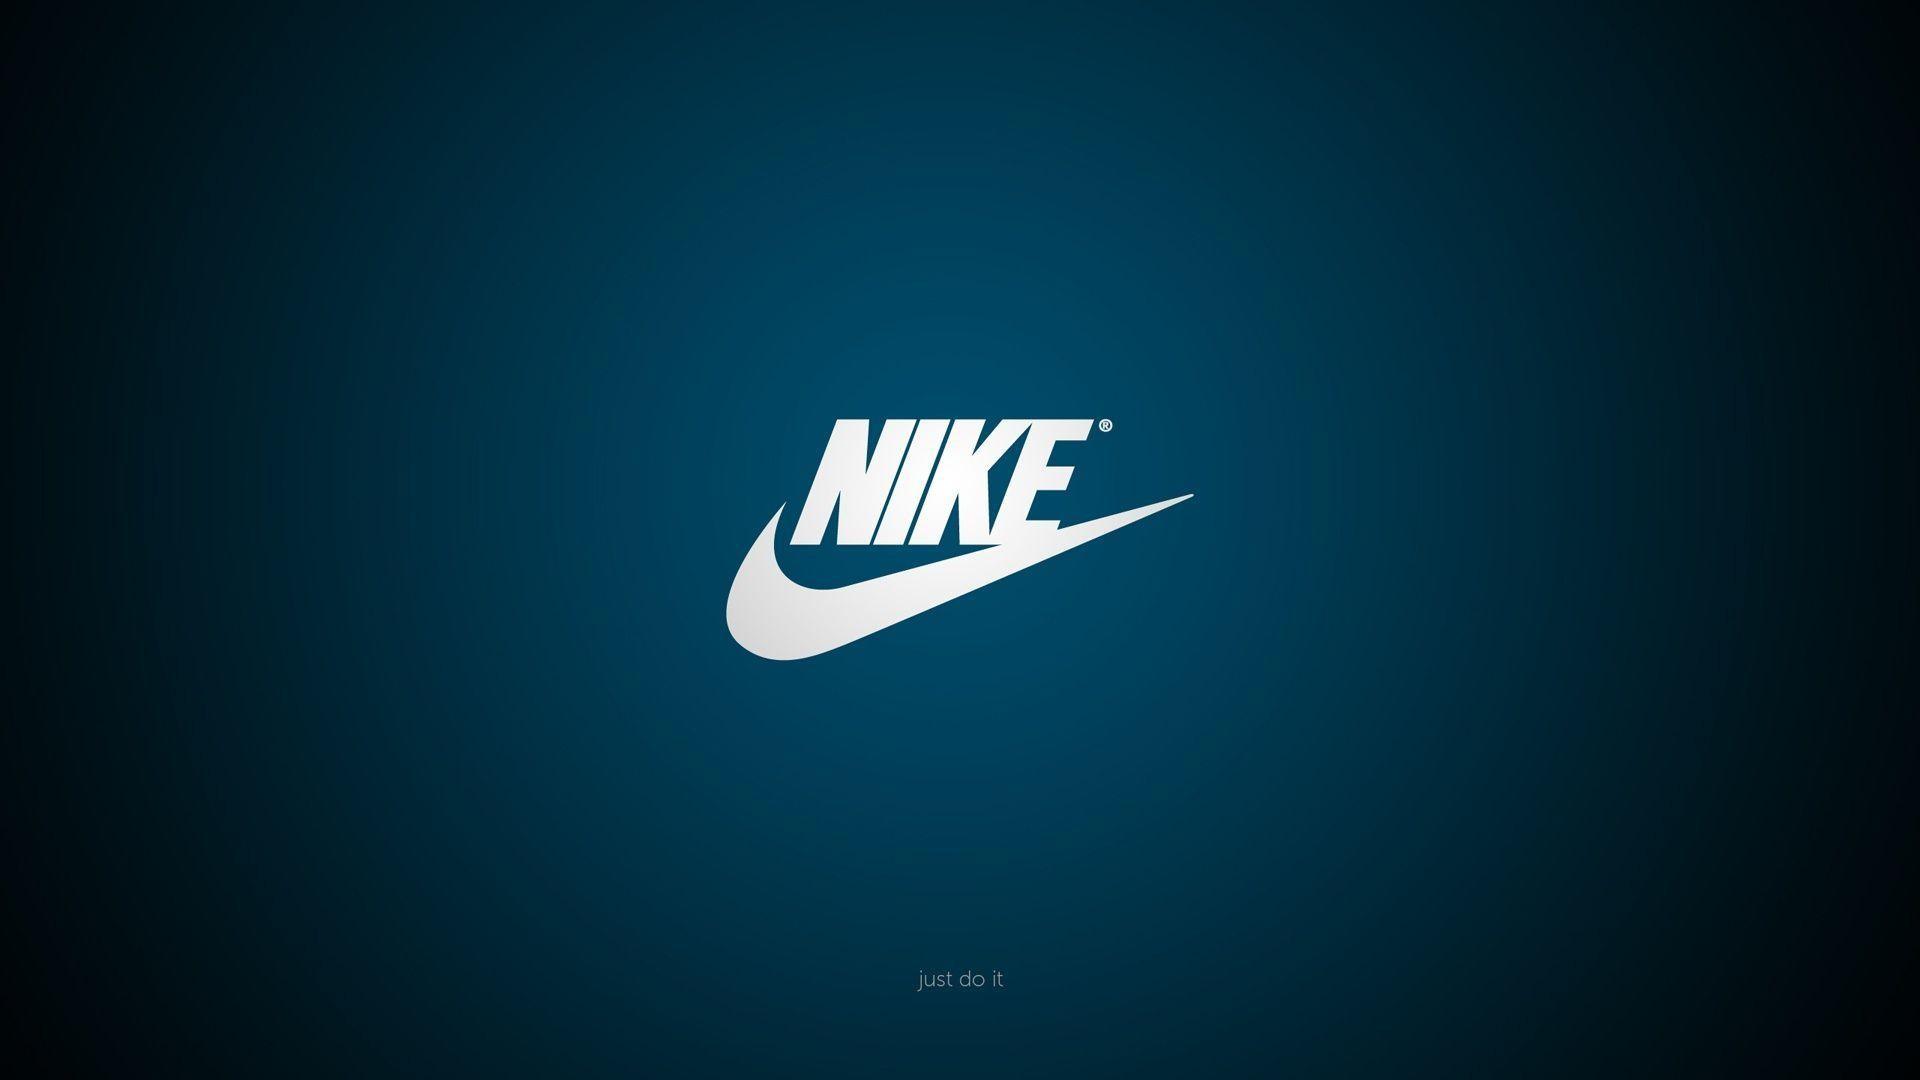 1920x1080 Wallpapers For Nike Wallpaper Just Do It Football